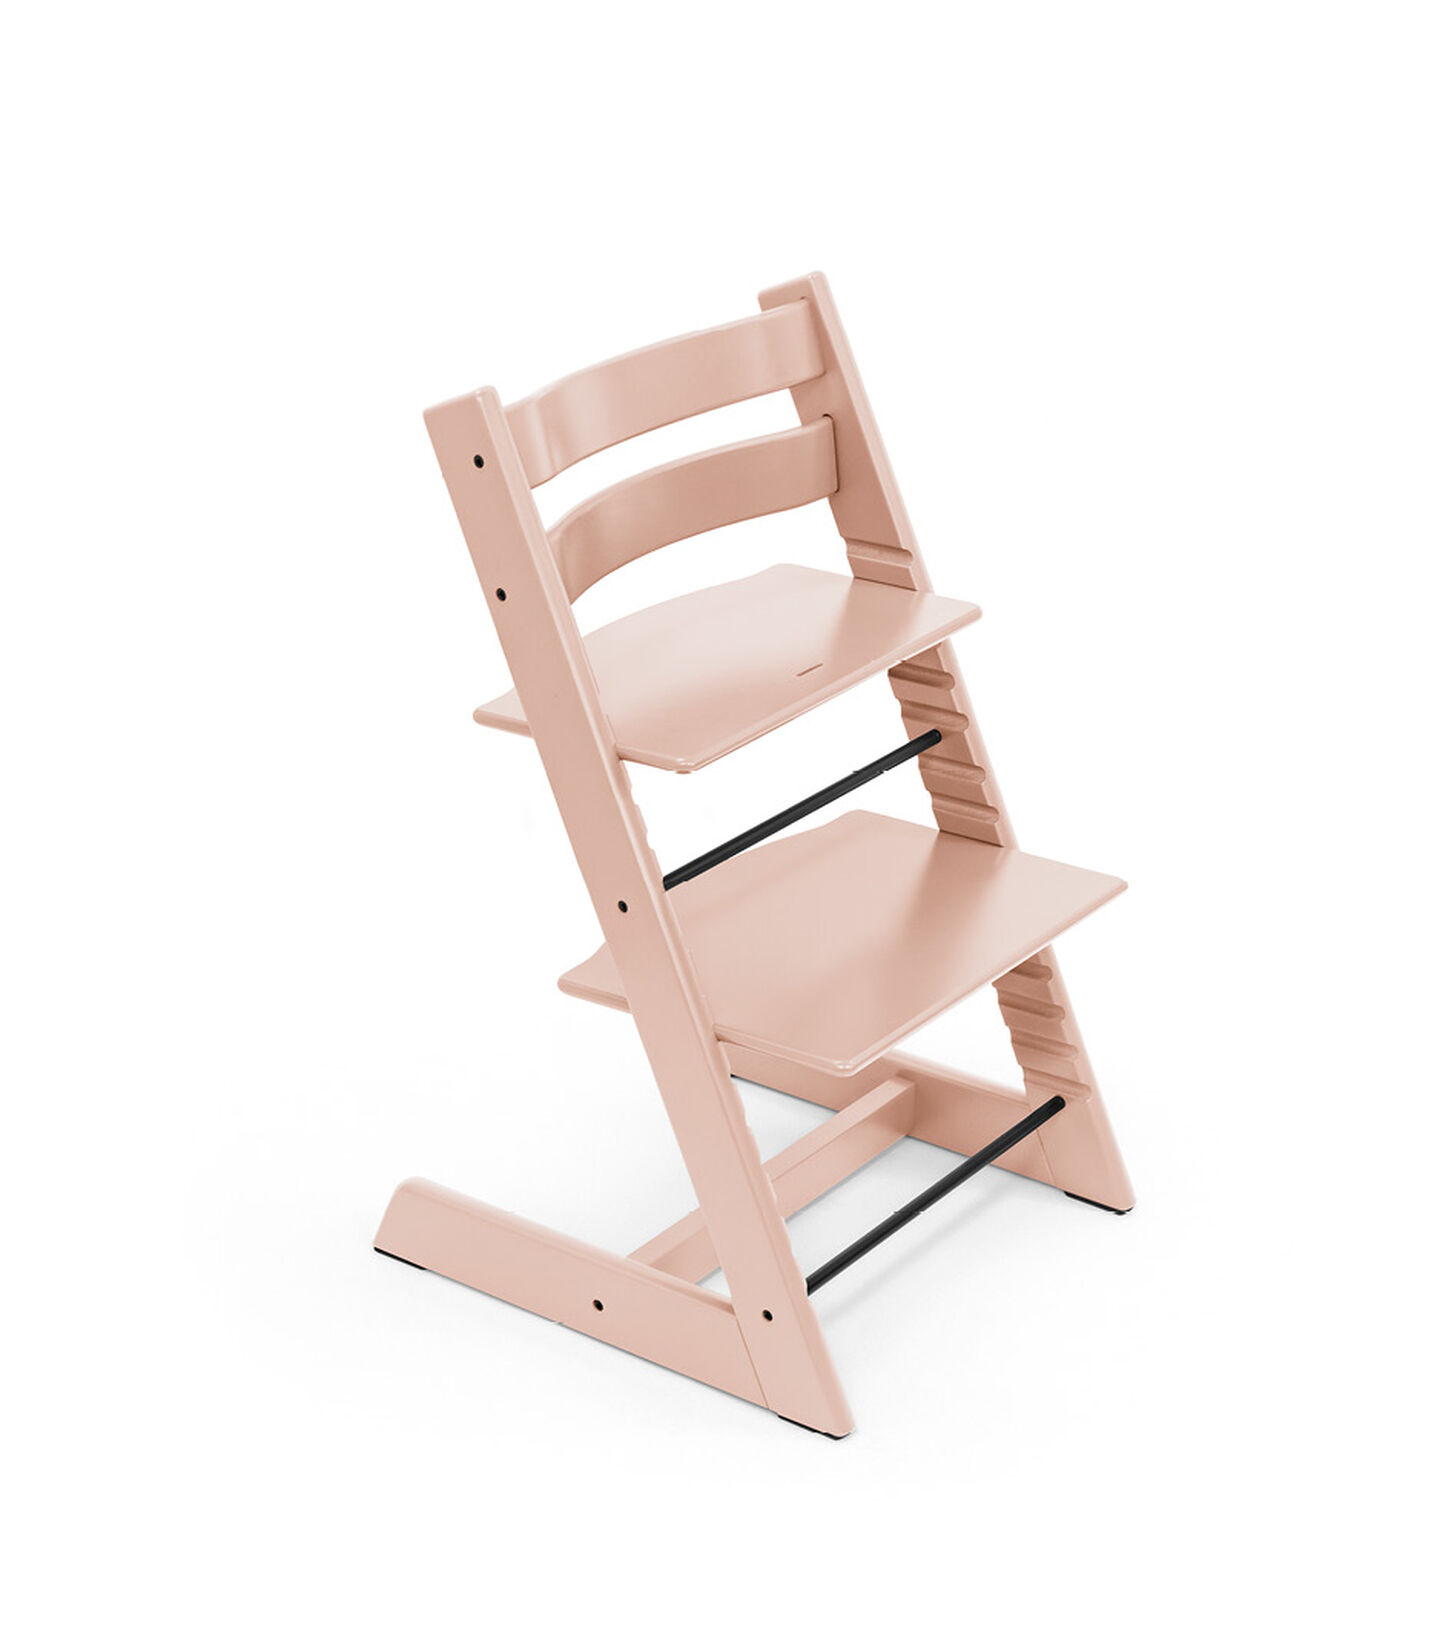 Tripp Trapp® Chair Serene Pink, Serene Pink, mainview view 1